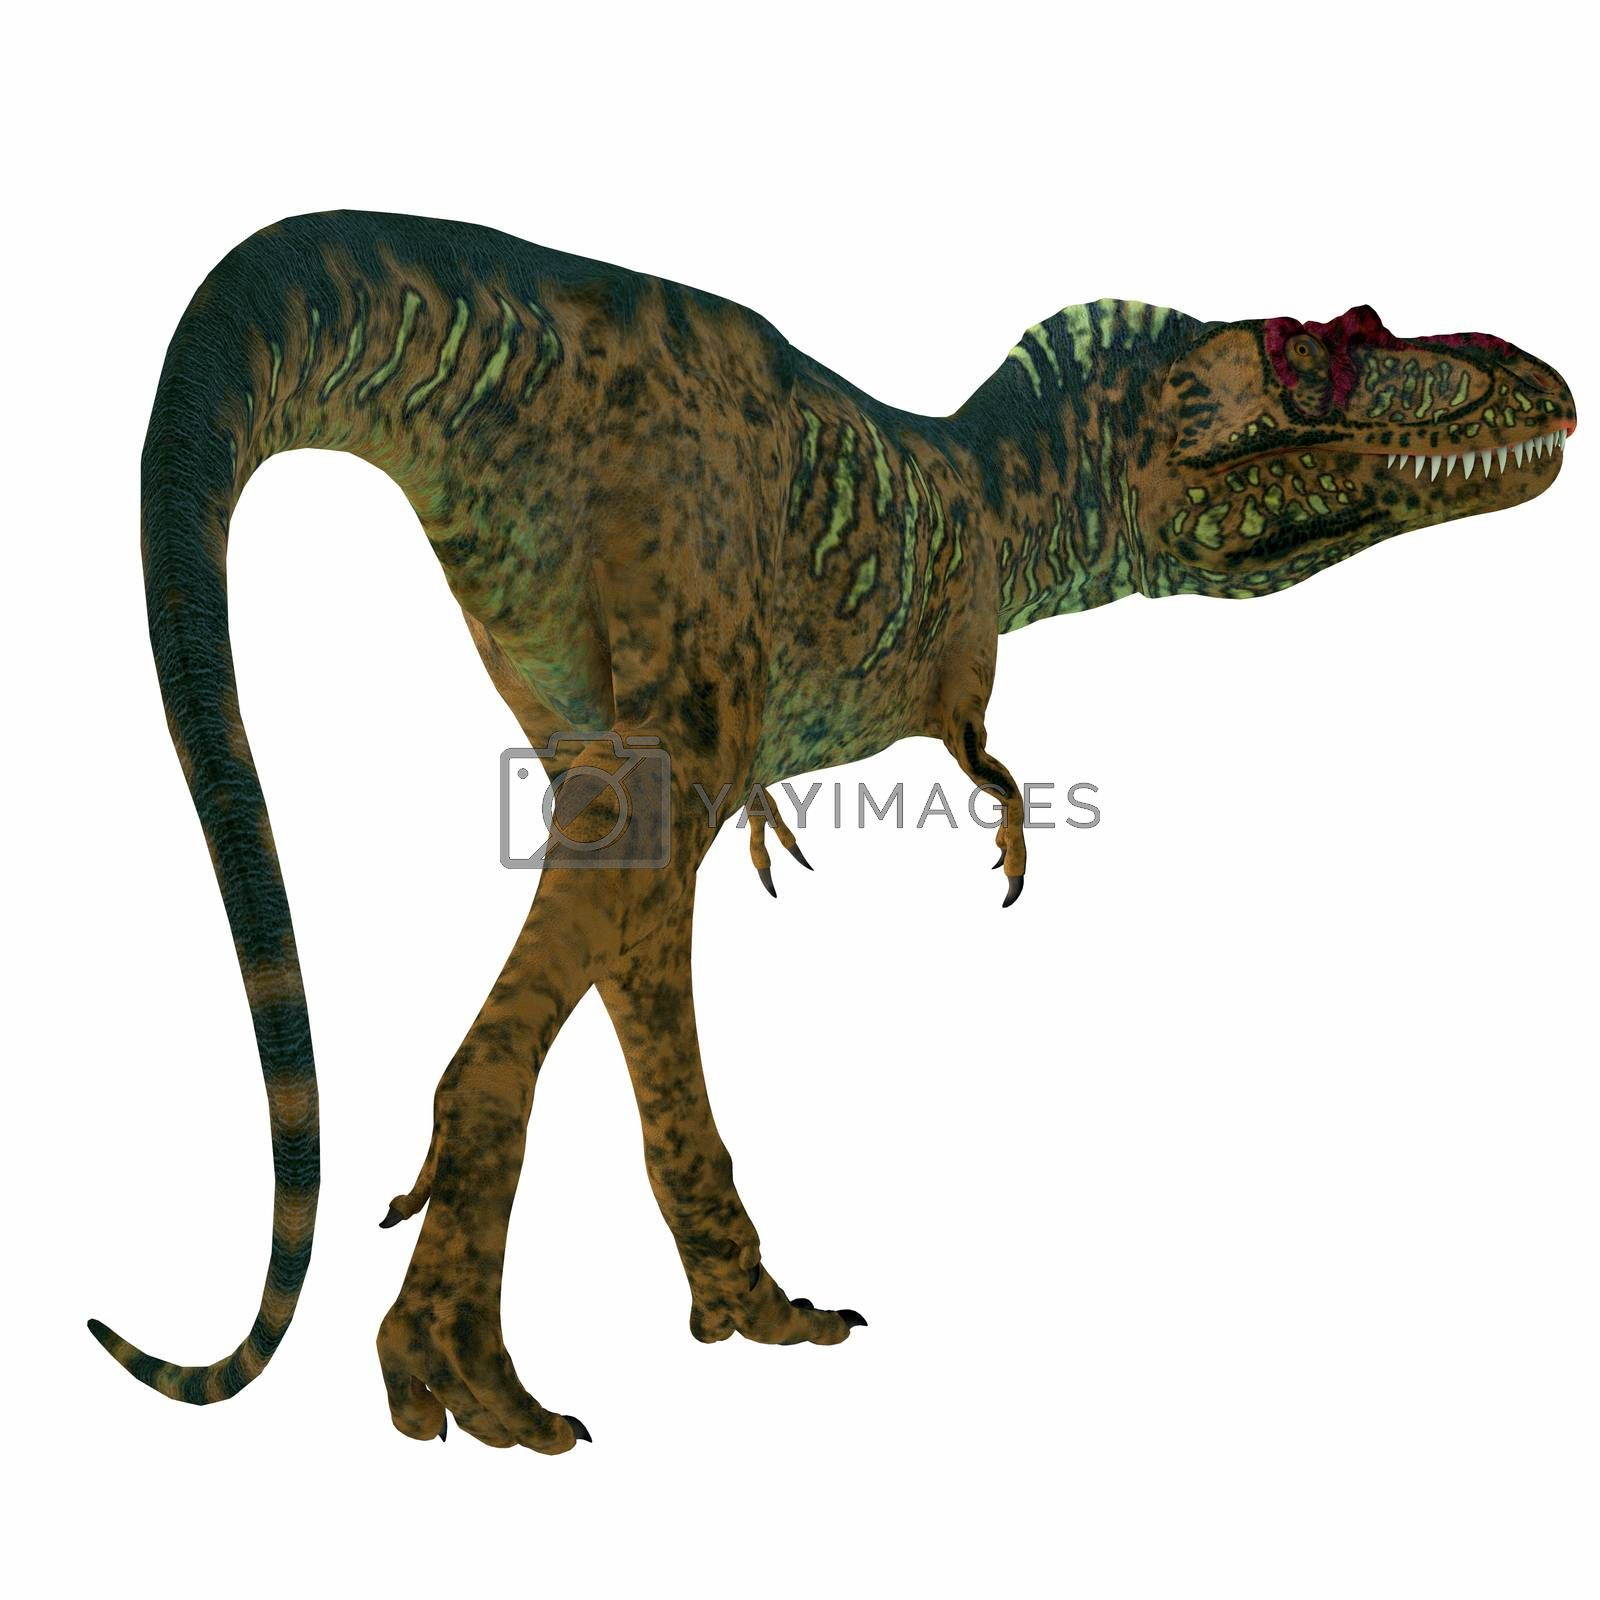 Albertosaurus was a carnivorous theropod dinosaur that lived in North America in the Cretaceous Period.